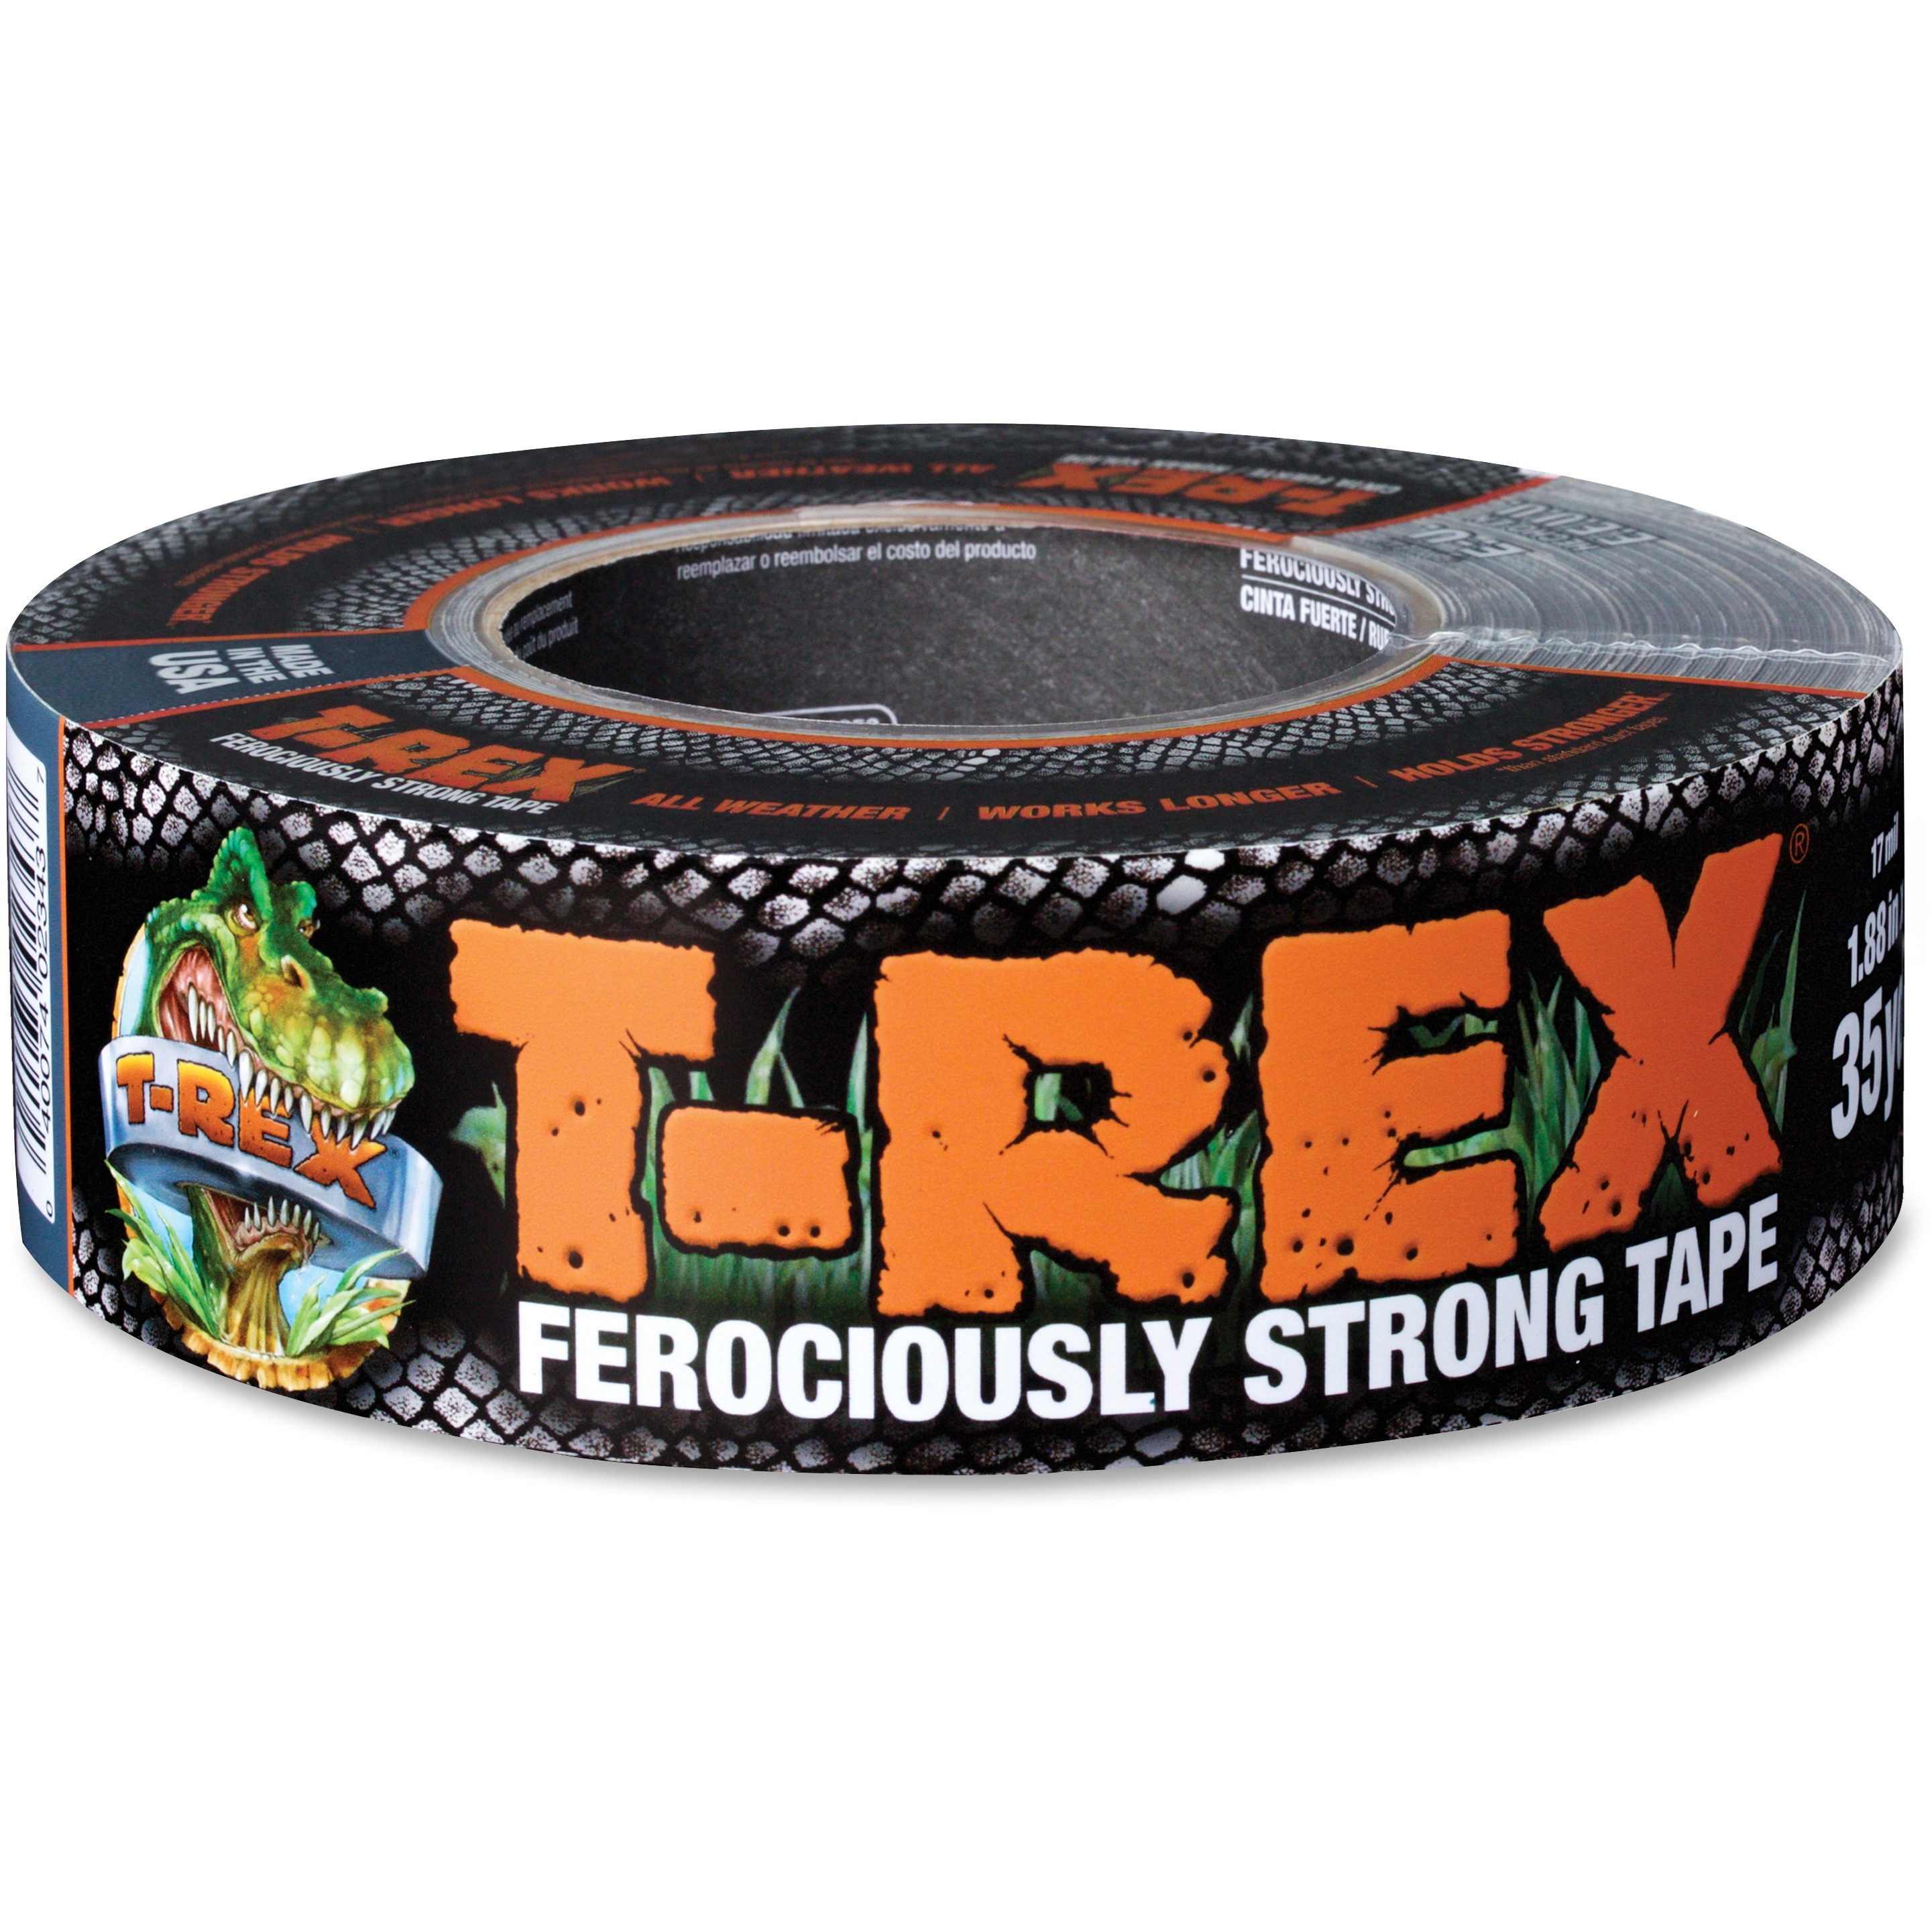 "T-REX Tape Ferociously Strong Repair Tape, 1.88"" x 35 yd, Gunmetal Gray"